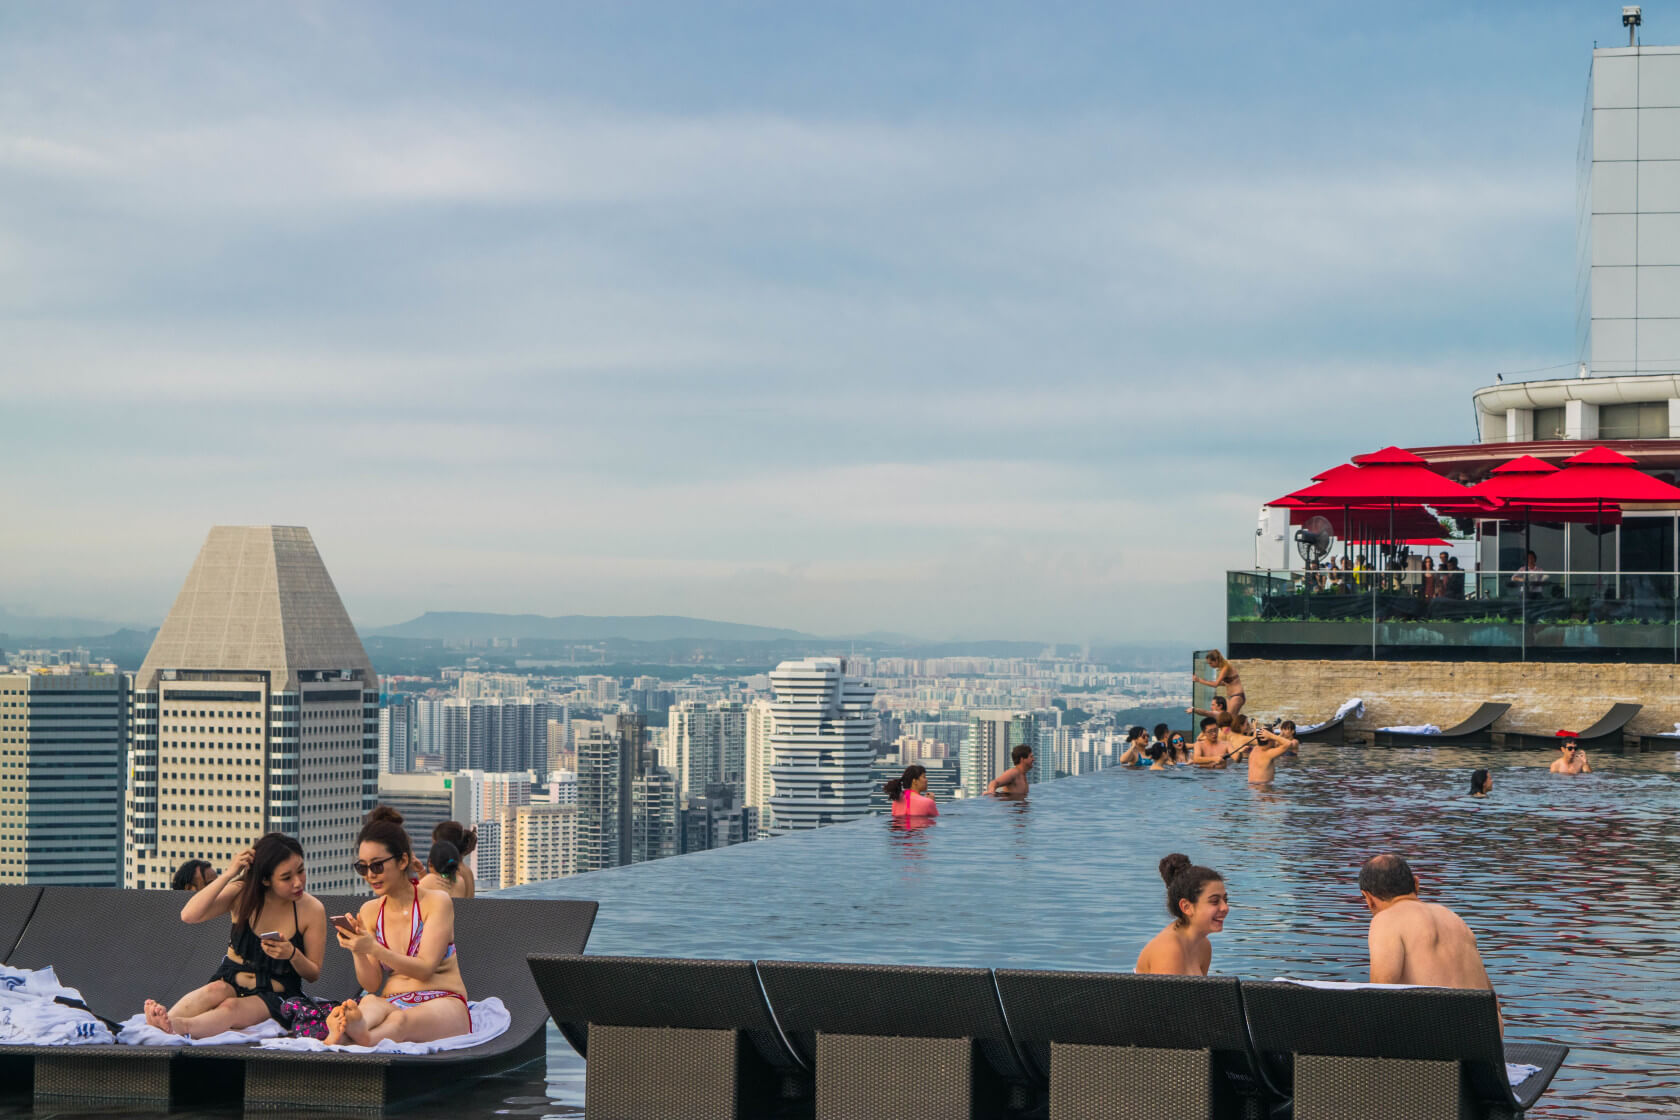 infinity pool singapore dangerous glass bottom singaporem126 how snuck into the marina bay sands infinity pool in singapore